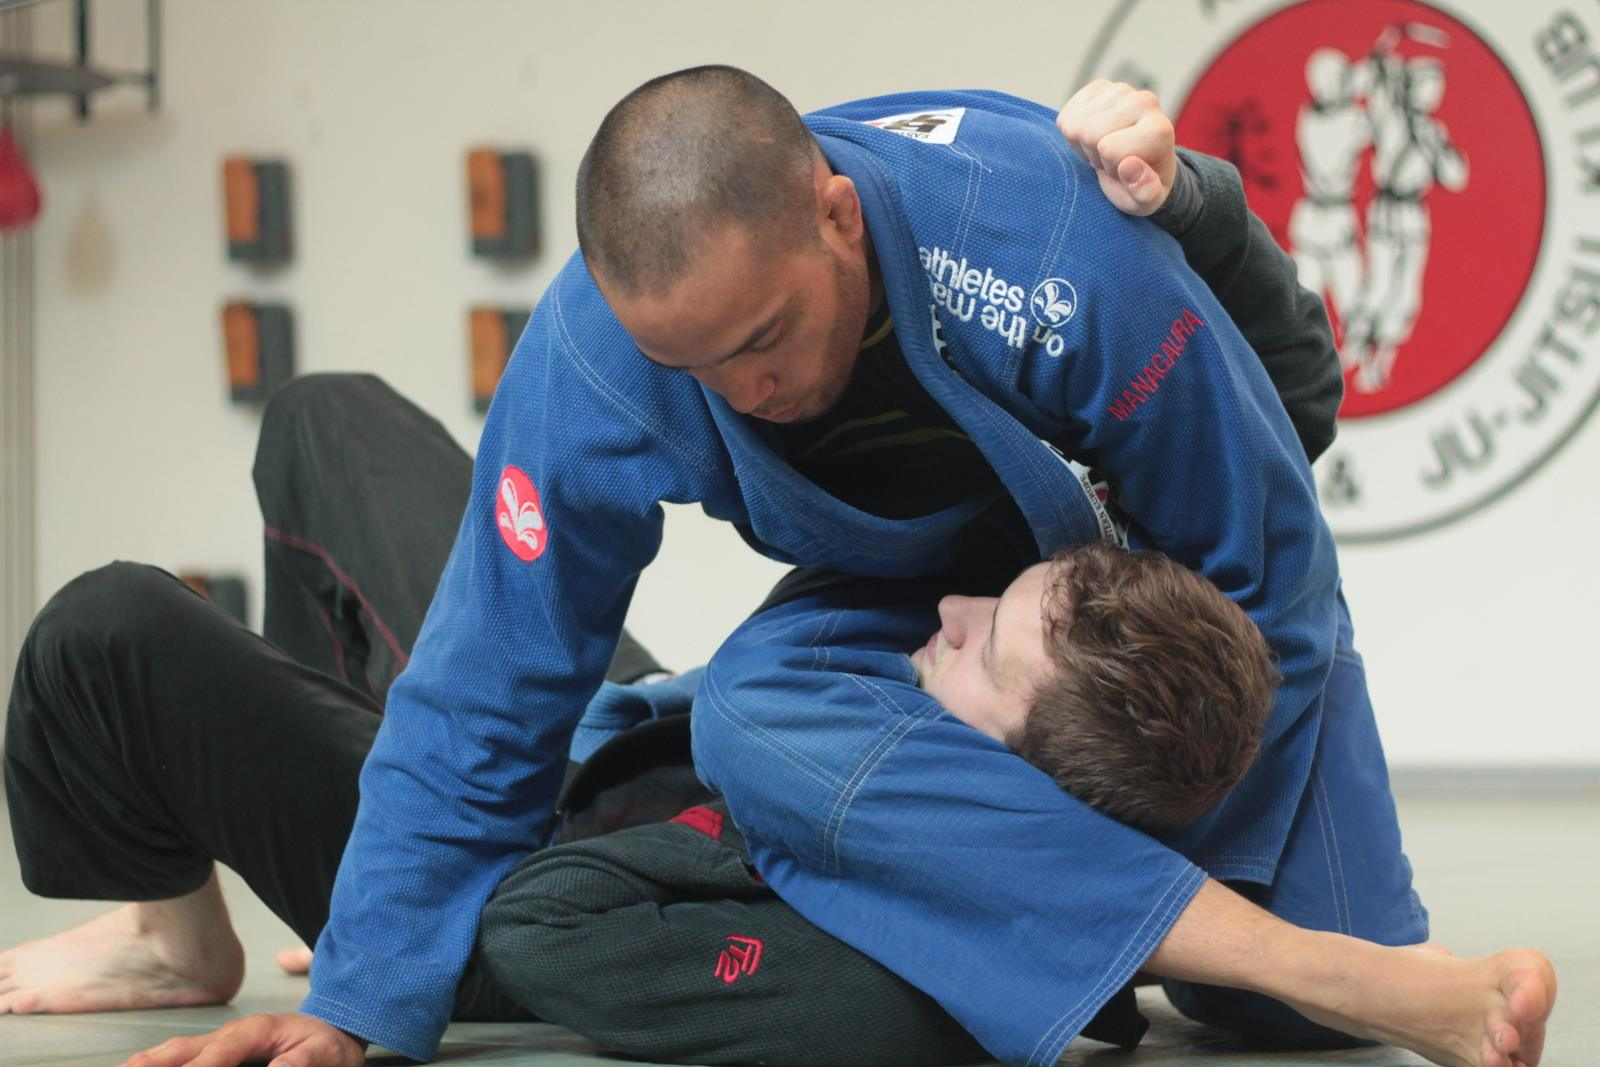 Is Your Jiu-Jitsu Game Stuck in The Mud? Try Slow Technical Rolling